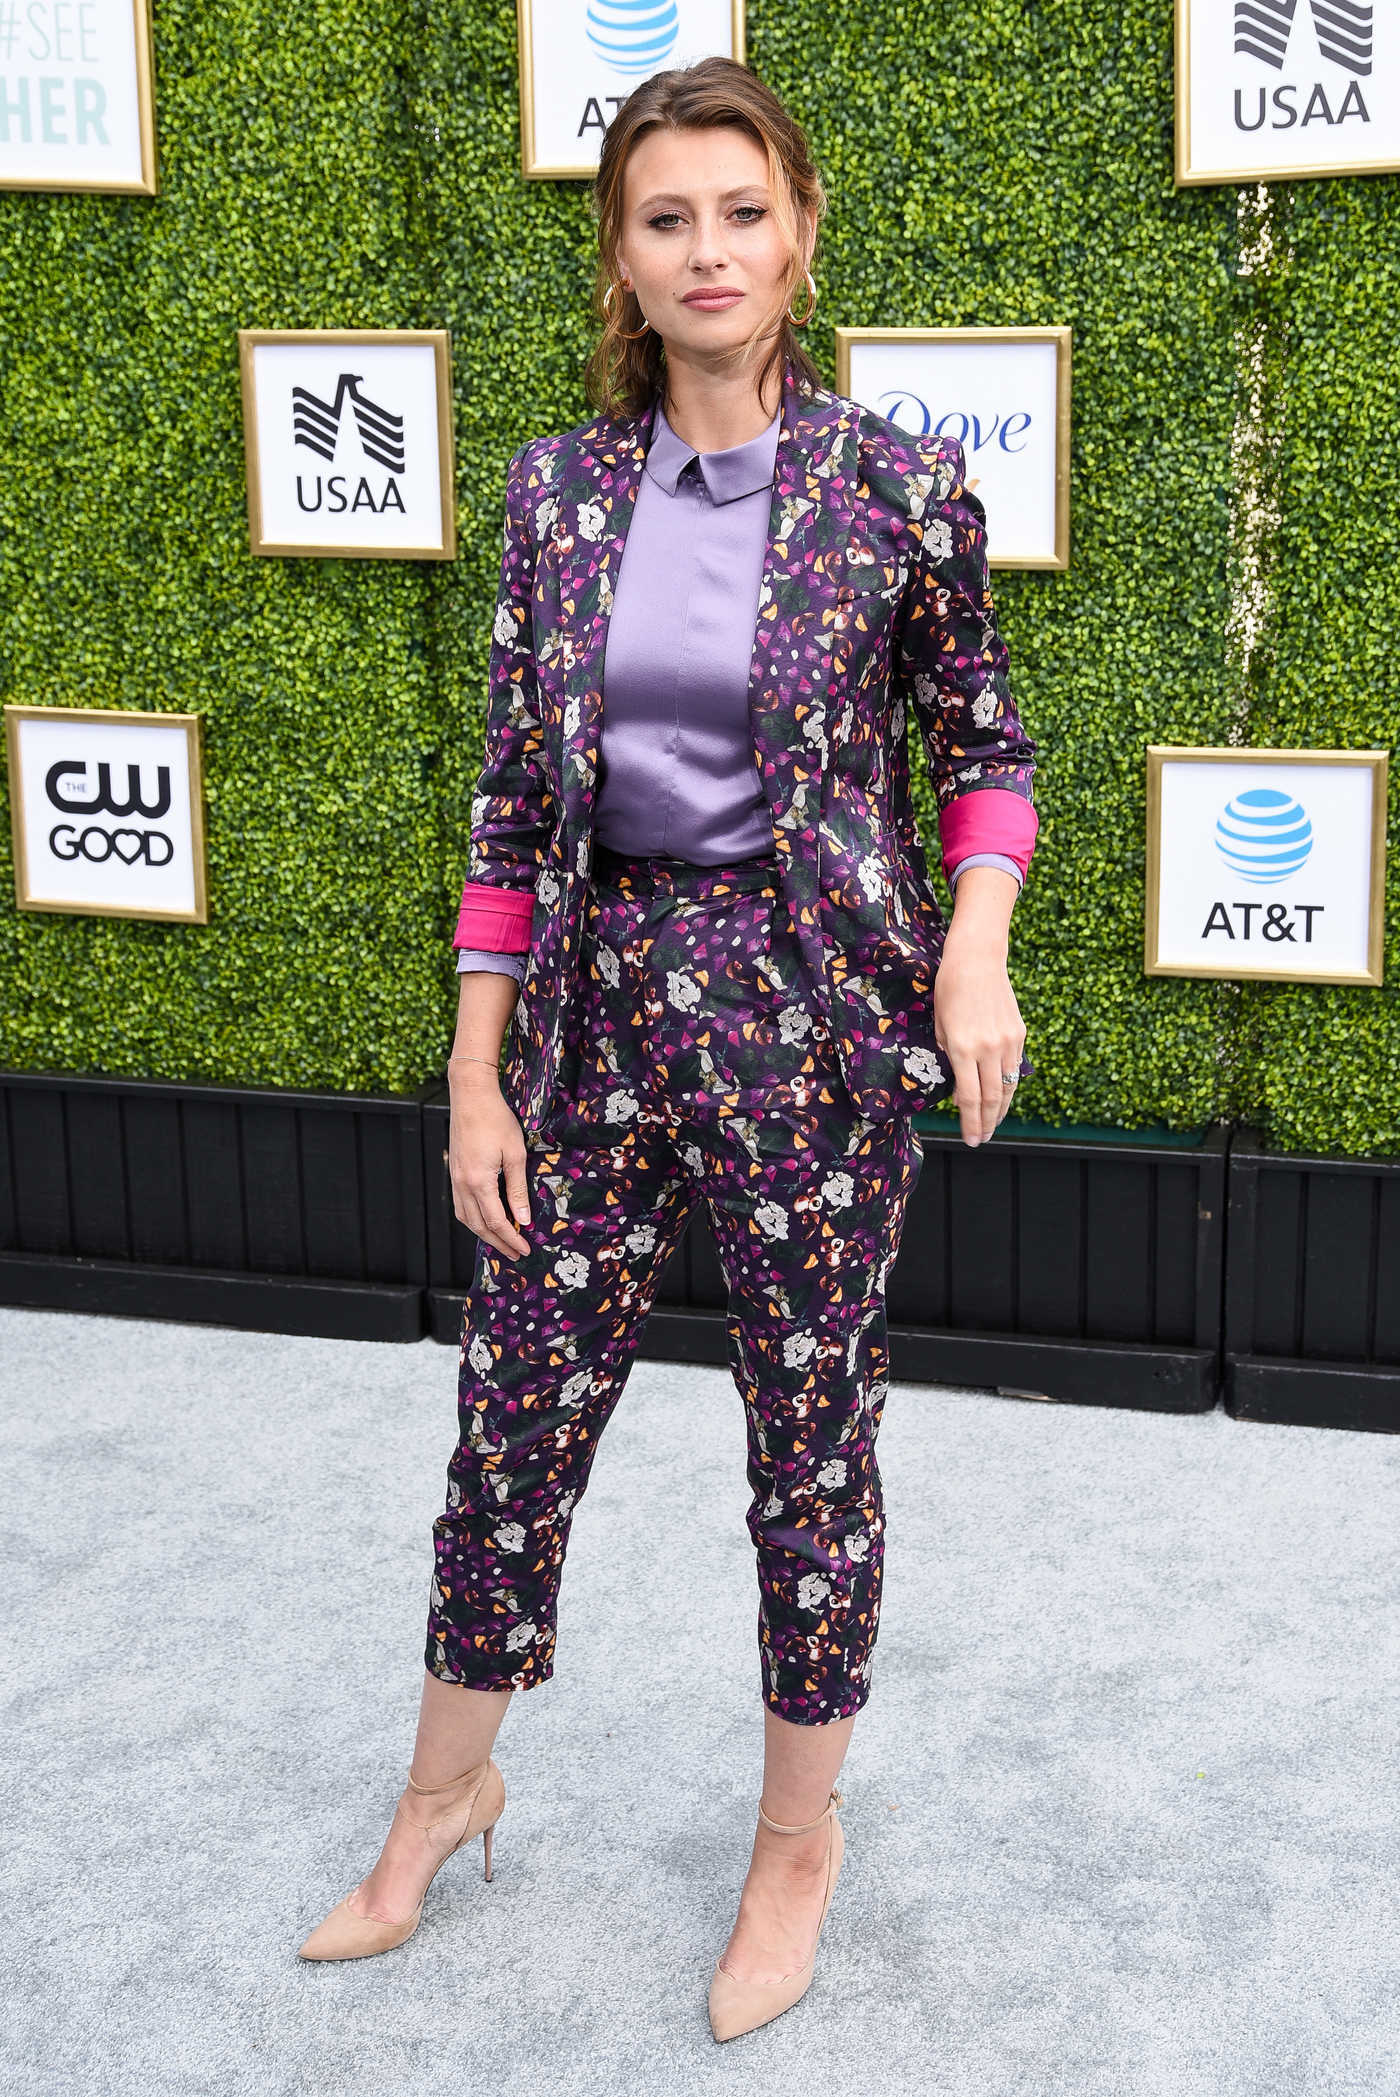 Aly Michalka Attends the CW Networks Fall Launch Event in LA 10/14/2018